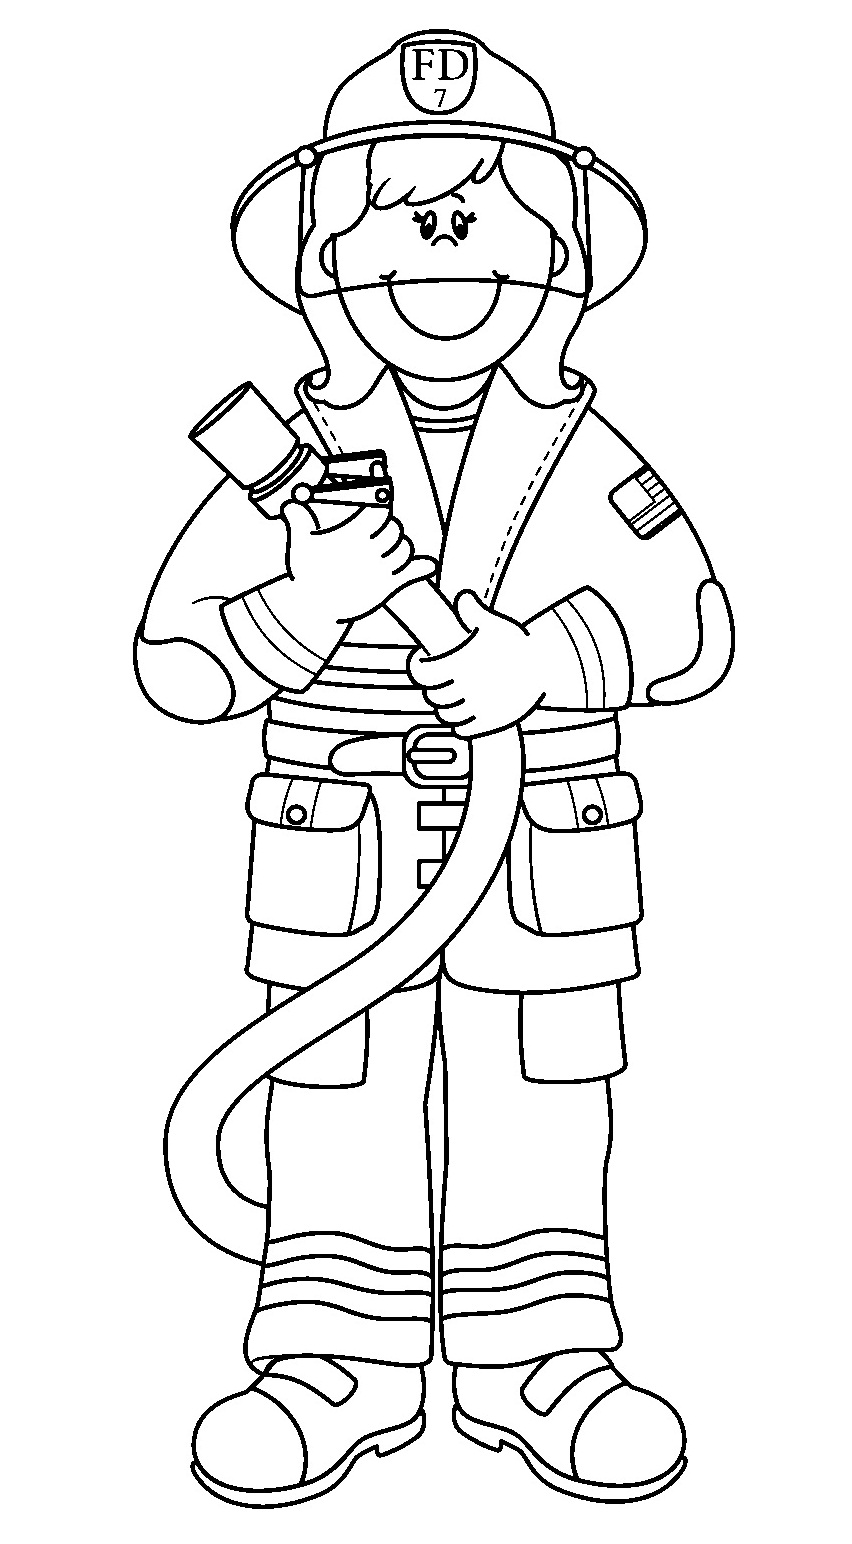 852x1544 Fortune The Office Tv Show Coloring Pages Printable Fireman